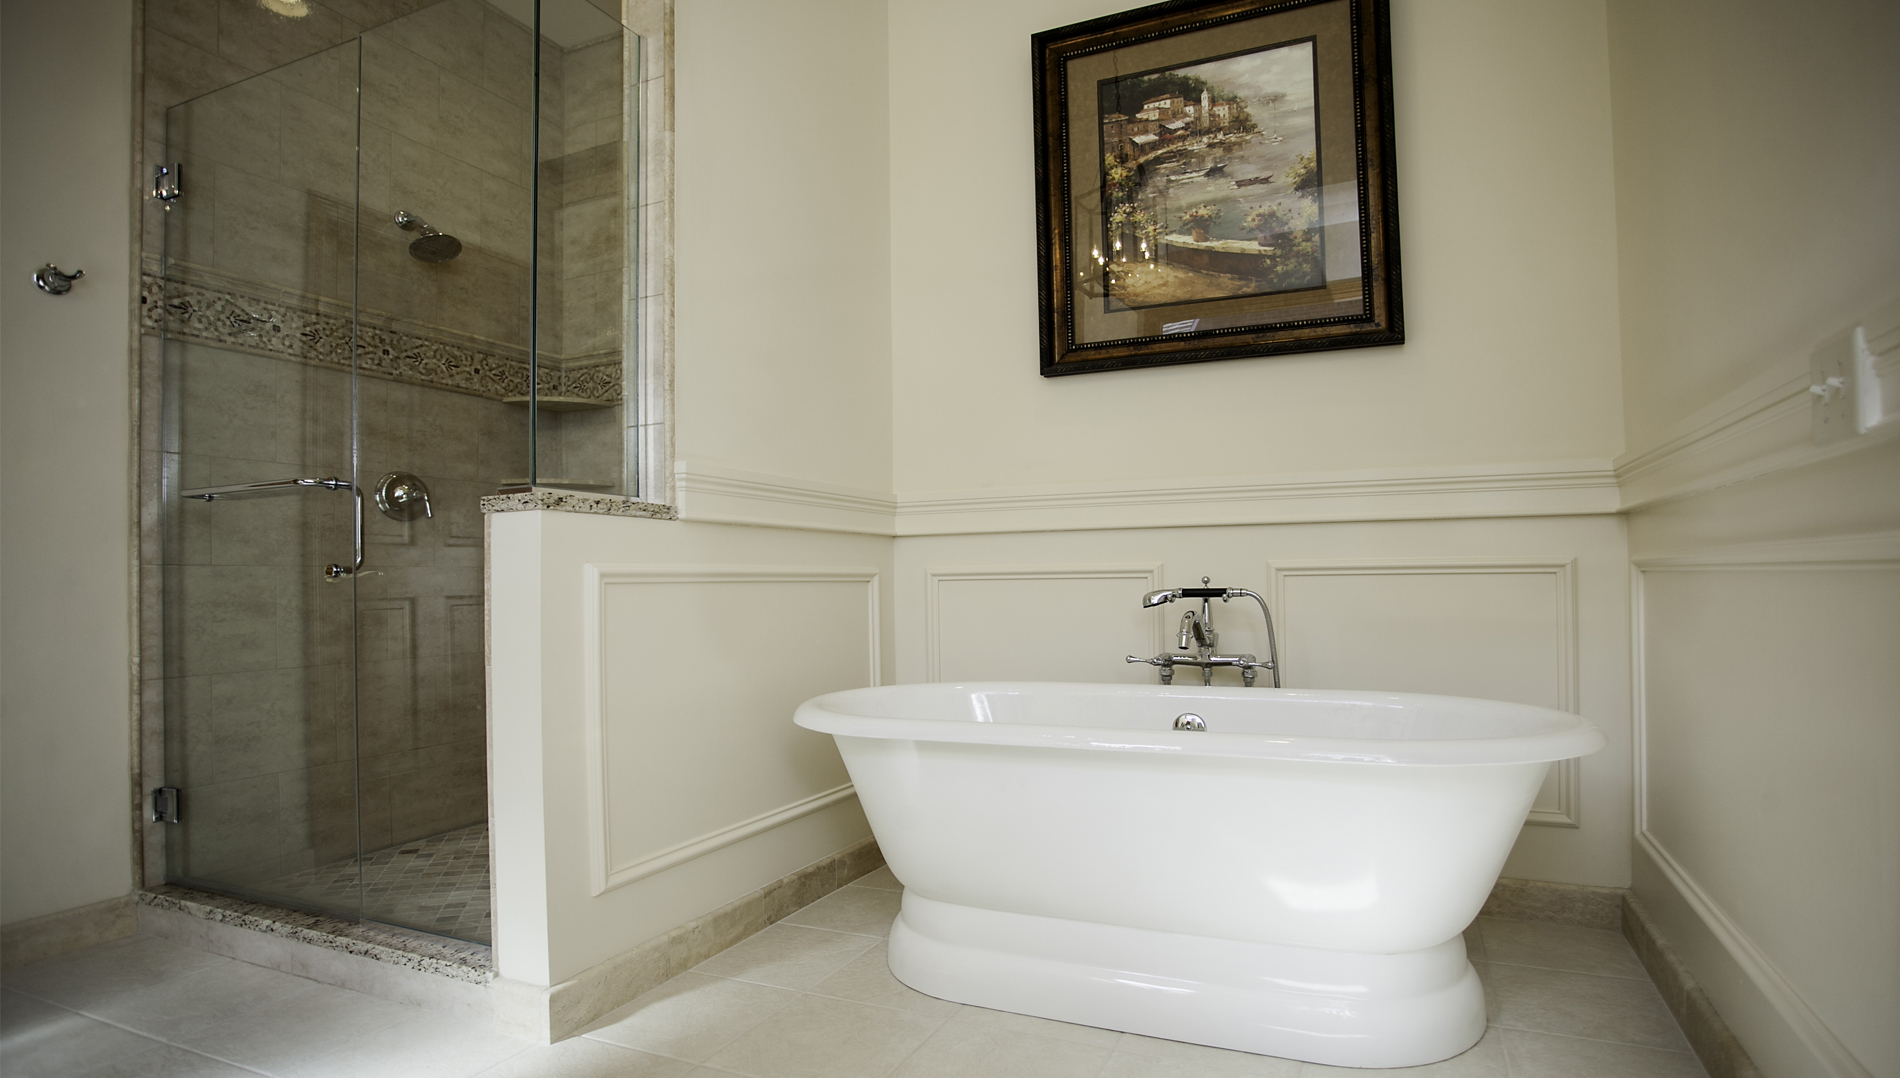 Bathroom Remodeling Gallery Naperville Aurora Wheaton Part - Bathroom remodeling wheaton il